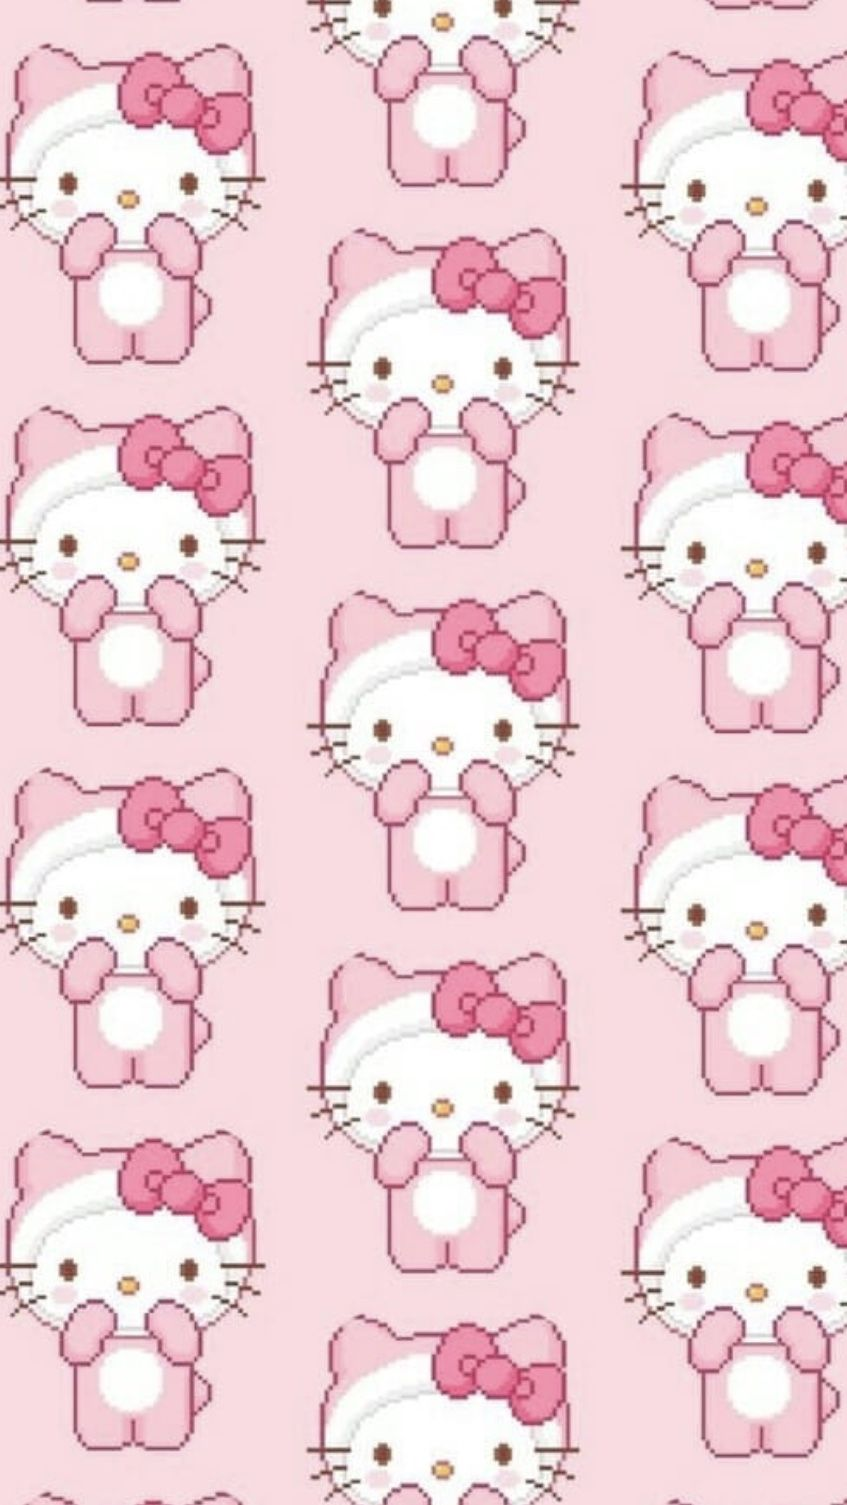 Pink Hello Kitty Wallpaper Pink Hello Kitty Hello Kitty Backgrounds Hello Kitty Wallpaper